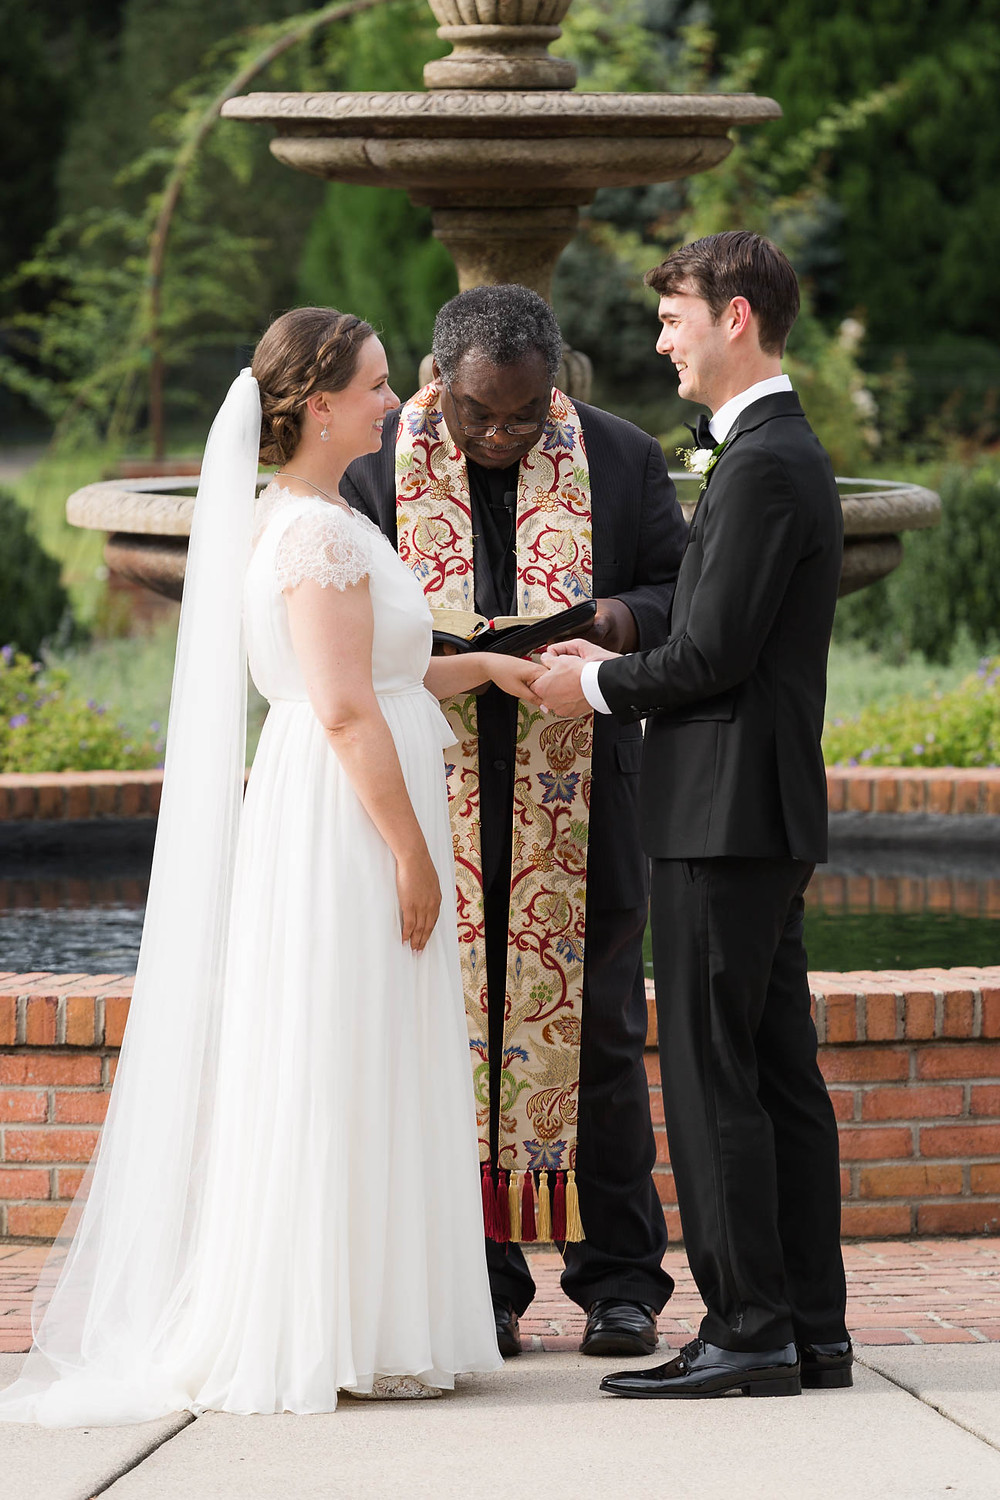 bride and groom exchange vows and rings at outdoor ceremony